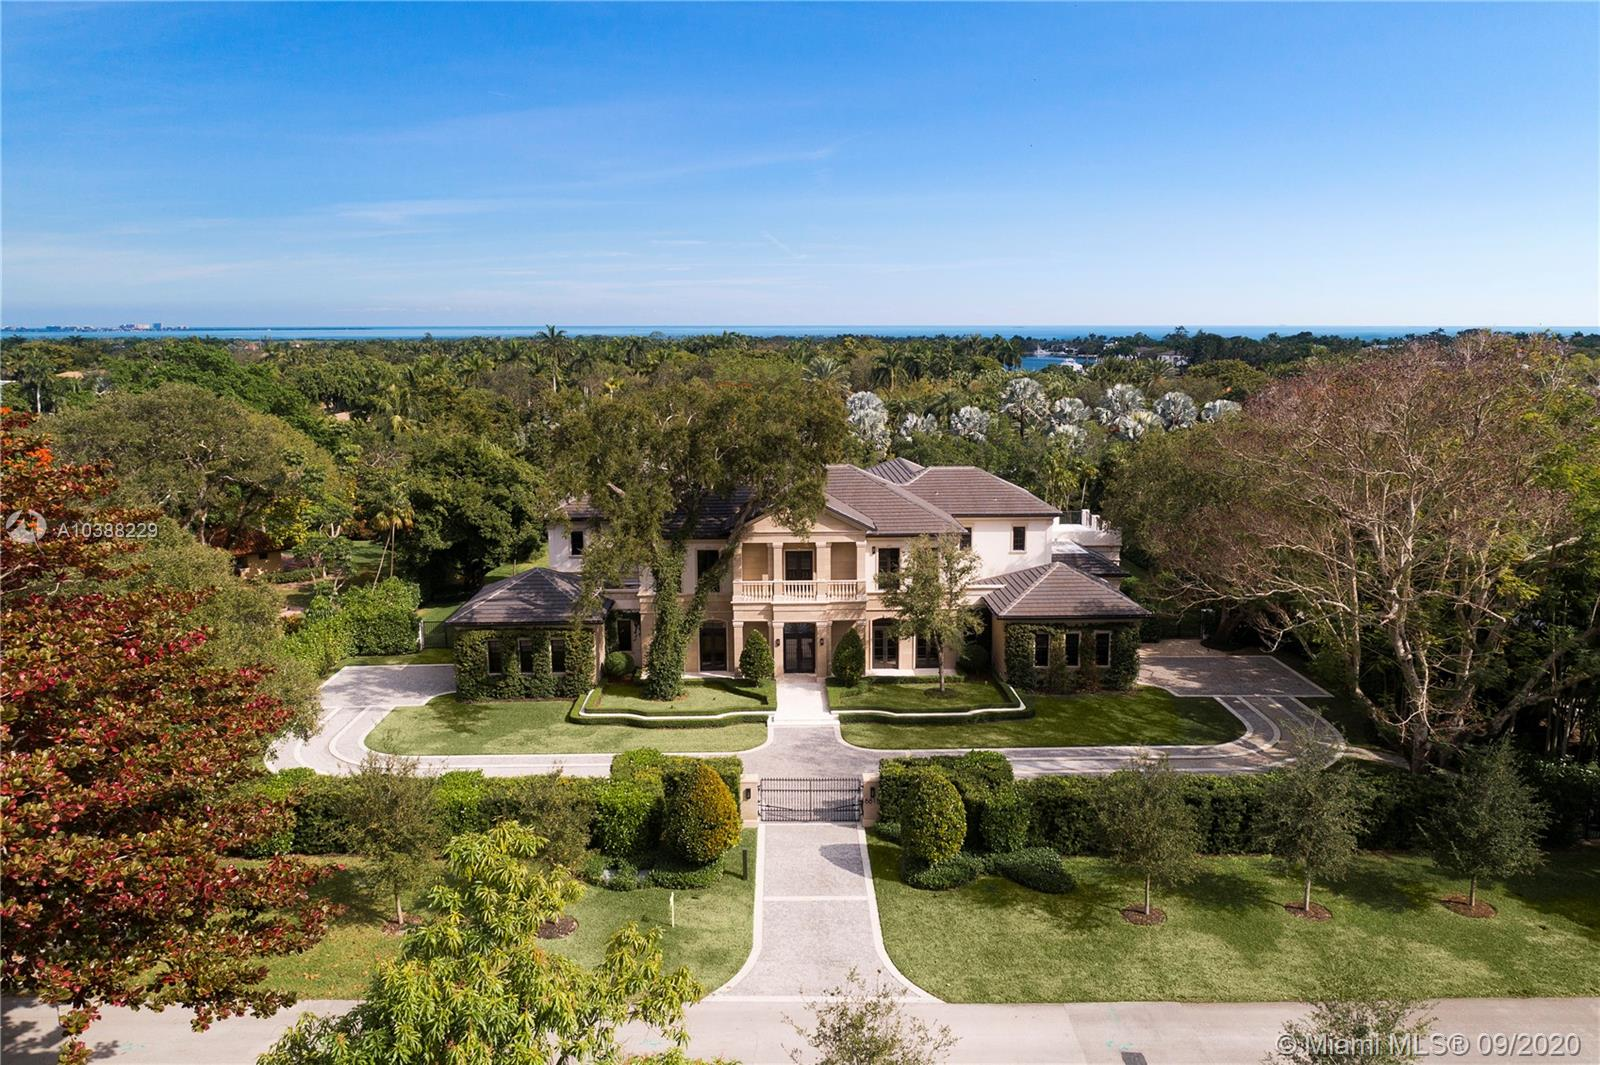 Set perfectly on a 50,000sf waterfront lot in prestigious and gated Gables Estates, this 2017 classic Palladian home offers the perfect backdrop for either lavish entertaining or cozy family affairs.In the 12,839 sf home, one finds a theater, large family room,gourmet cook's, eat-in kitchen, and master suite with his and her lavish baths and dressing room closets; 4 car garage, covered terraces with a cabana, summer kitchen and sparkling, oversized pool, serve as the centerpiece of the rolling back lawn.